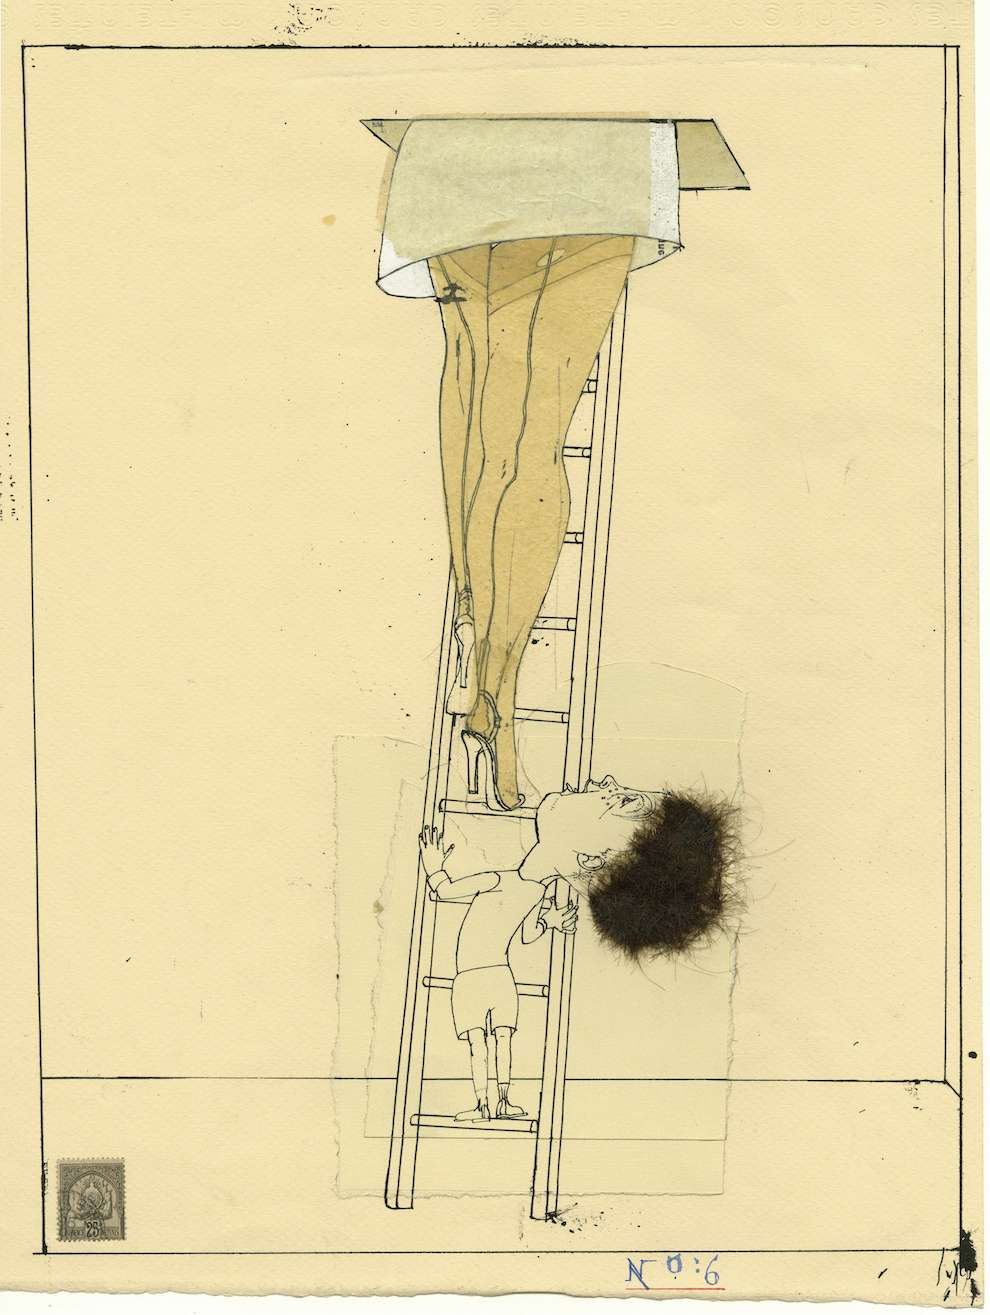 David Hughes, Line art illustration of a little kid looking under a woman's skirt while climbing a lader